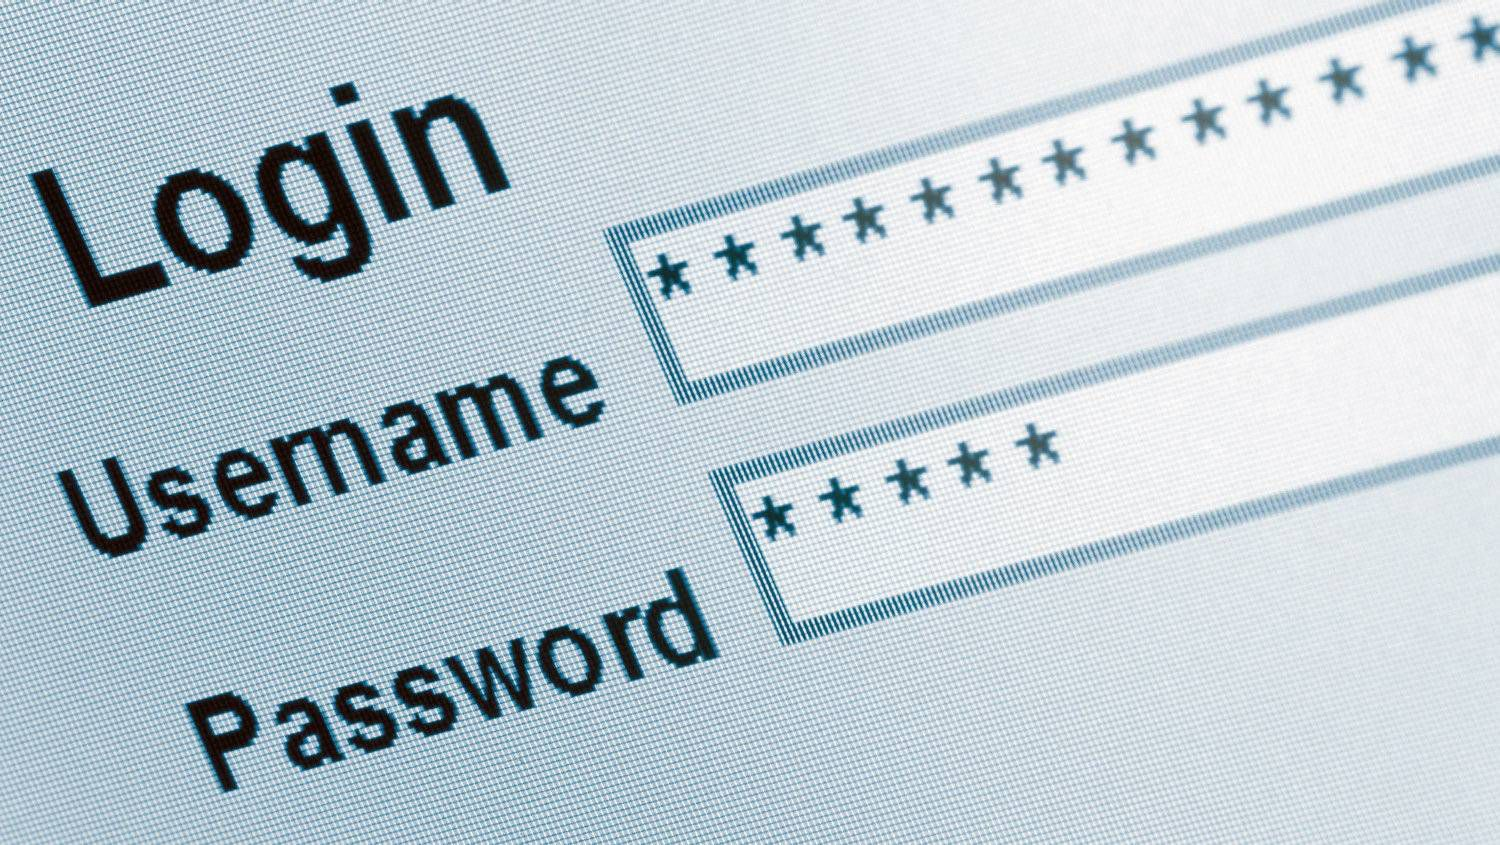 Top 25 most-hacked passwords revealed - The Globe and Mail